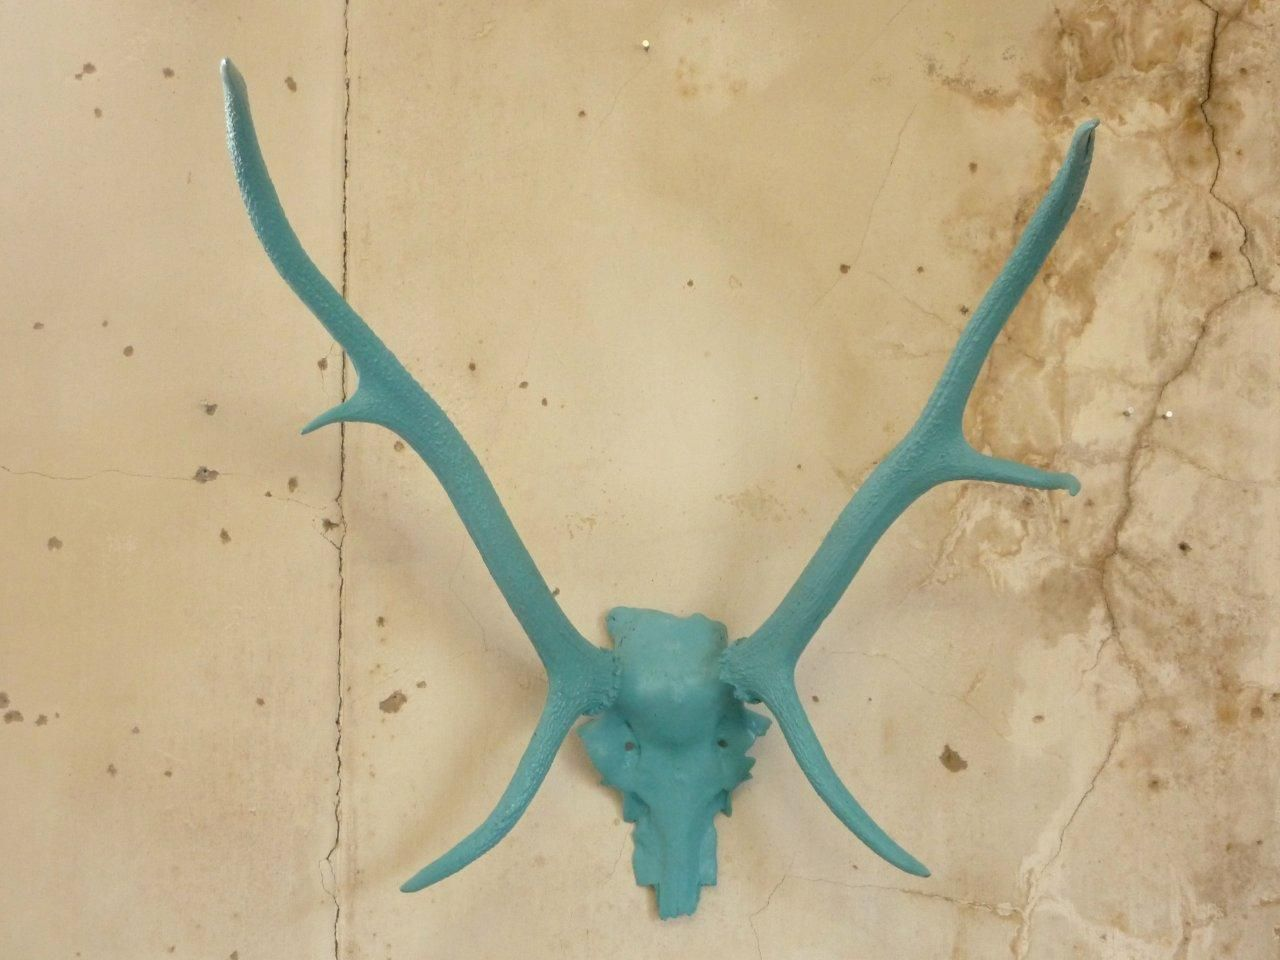 Deer Antlers Sobeitstudio Com Cast From A Specimen In Our Collection Available In A Natural Patina Or Any Other Colour You Can Deer Antlers Antlers It Cast